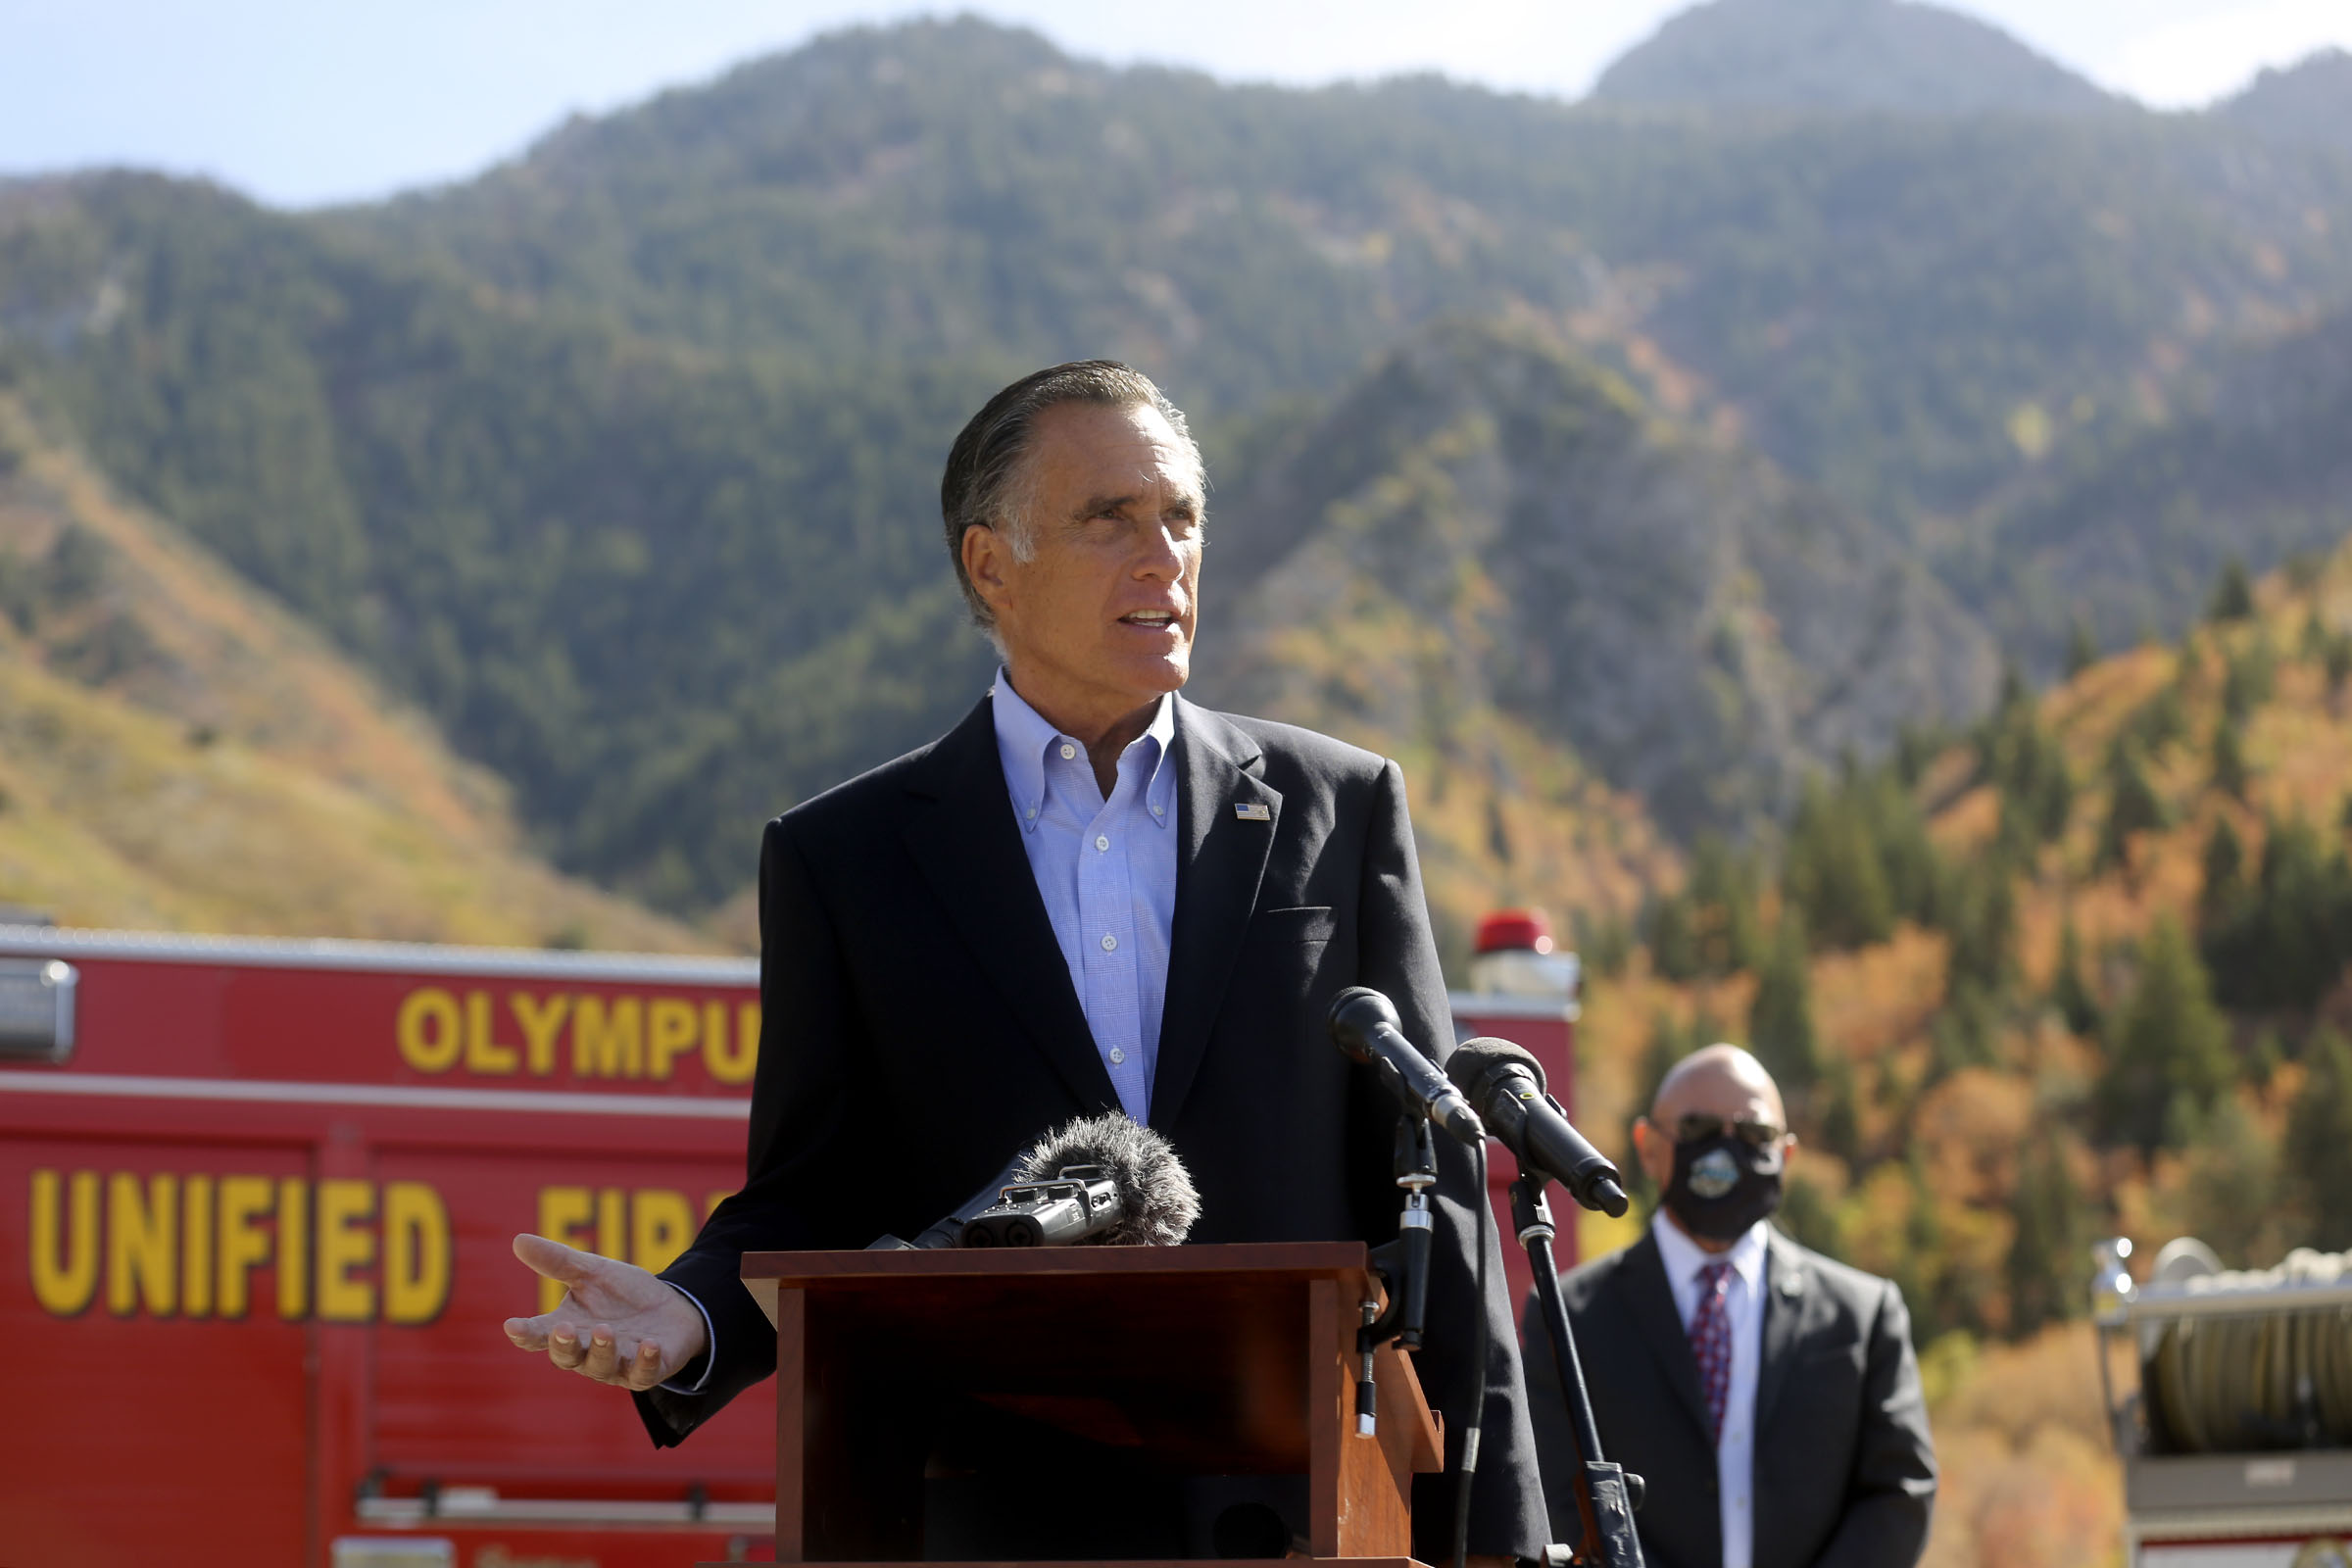 Sen. Mitt Romney, R-Utah, talks about his plan to establish a wildfire commission, to review national wildfire policies and make recommendations to Congress, during a press conference at the Neff's Canyon trailhead in Millcreek on Thursday, Oct. 15, 2020.